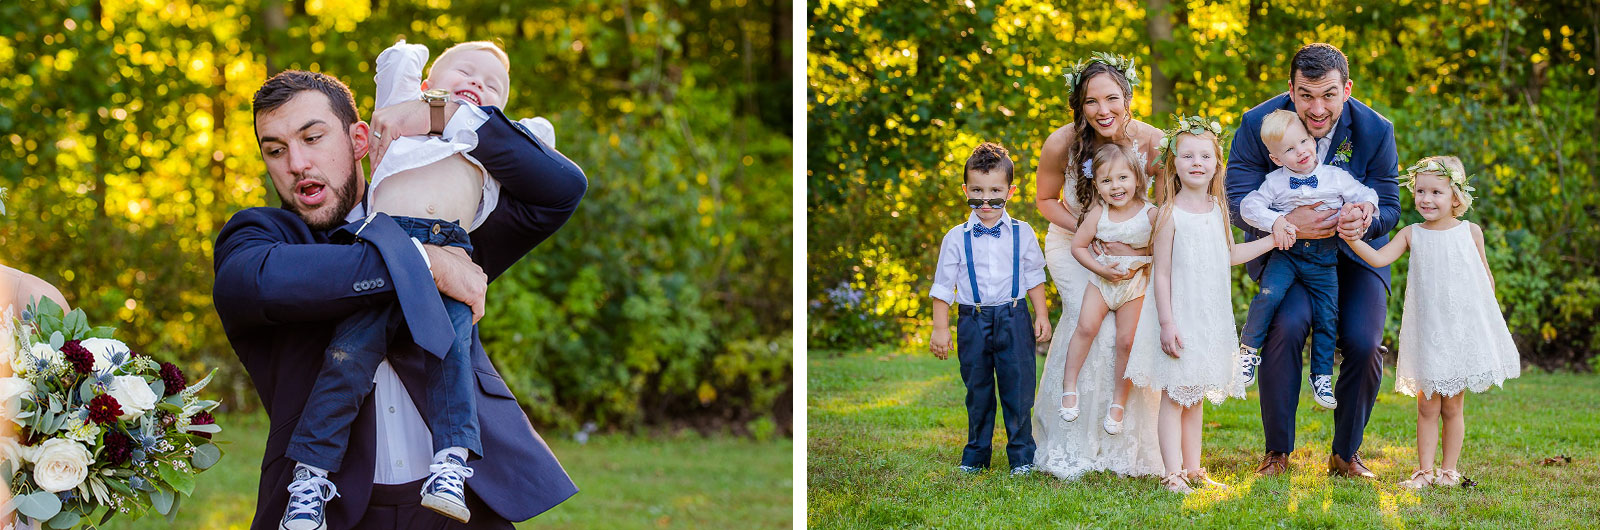 Eric_and_Christy_Photography_Blog_Stephanie_Nick_Wedding-78-79